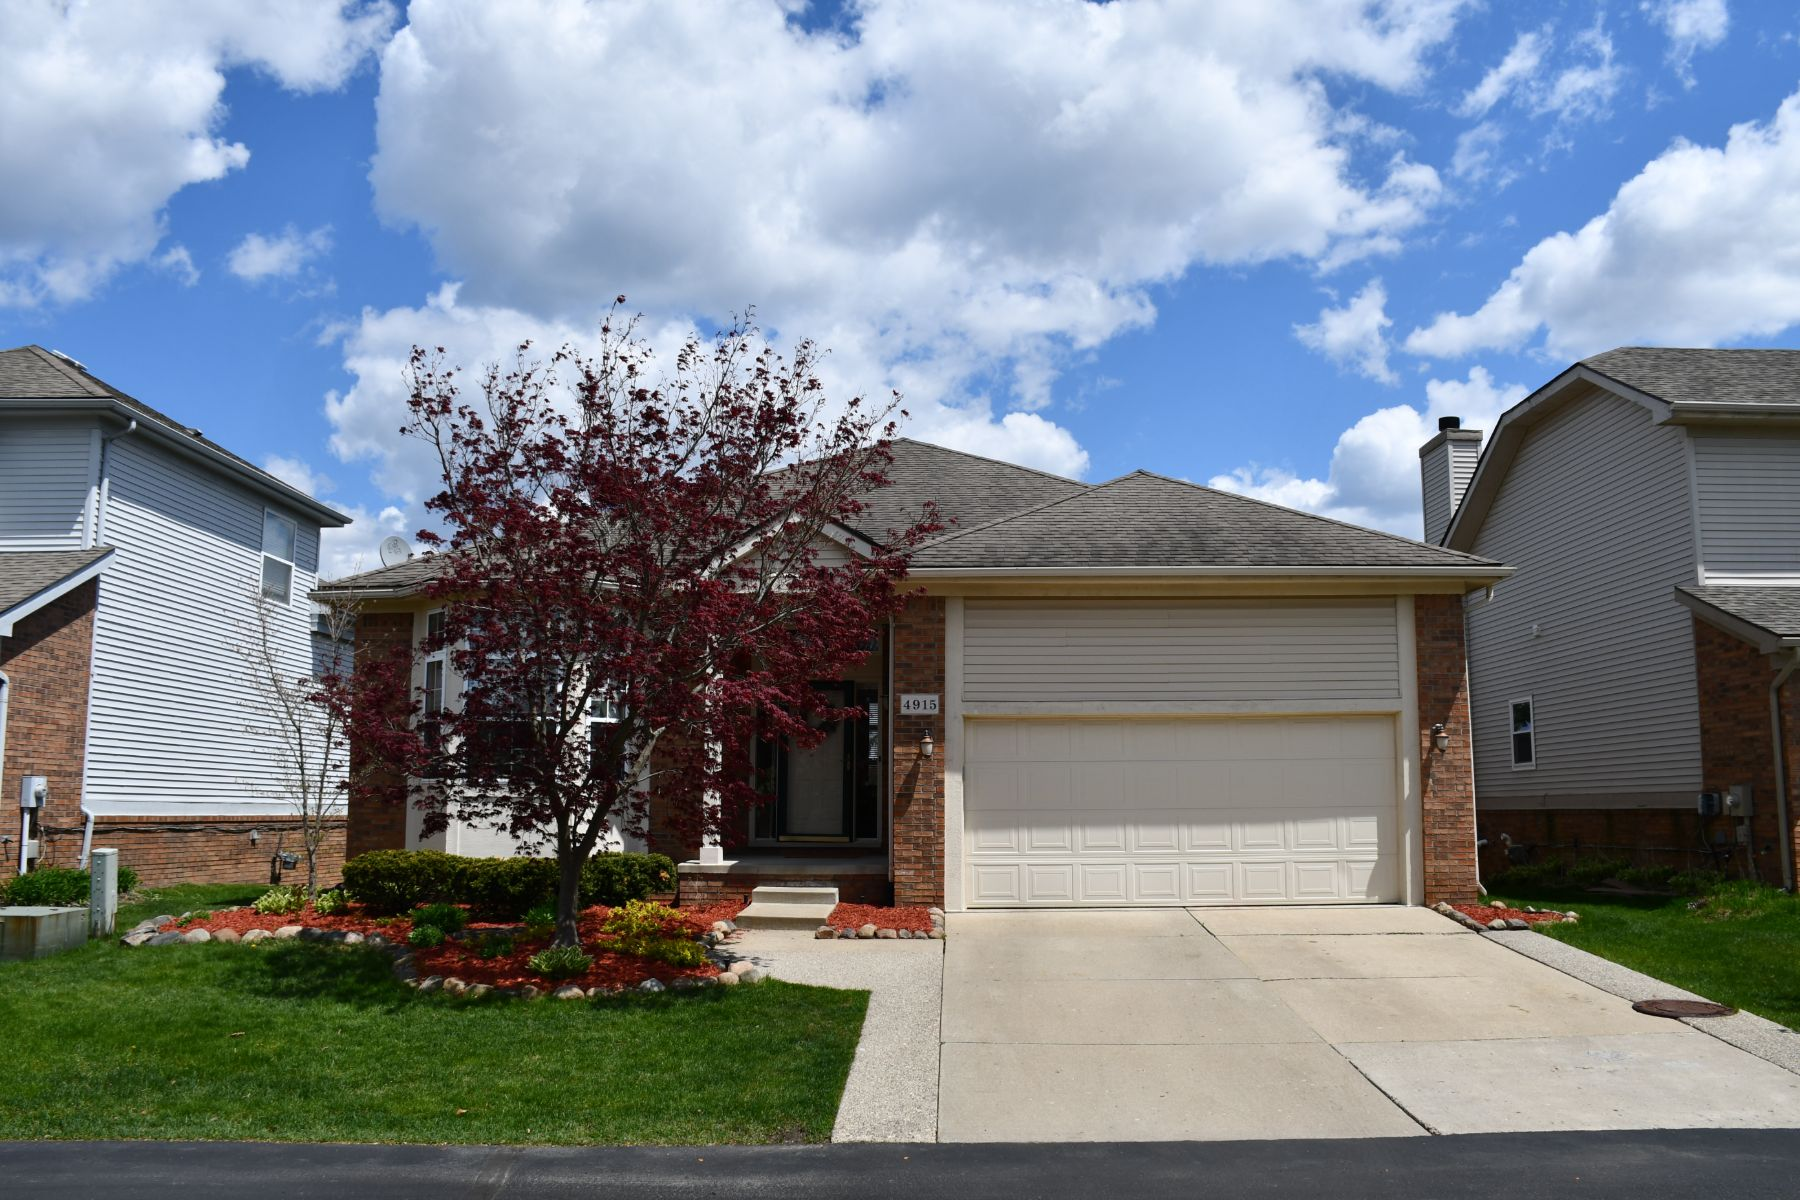 Single Family Homes for Sale at Oakland Twp 4915 Georgetown Dr Oakland Township, Michigan 48306 United States